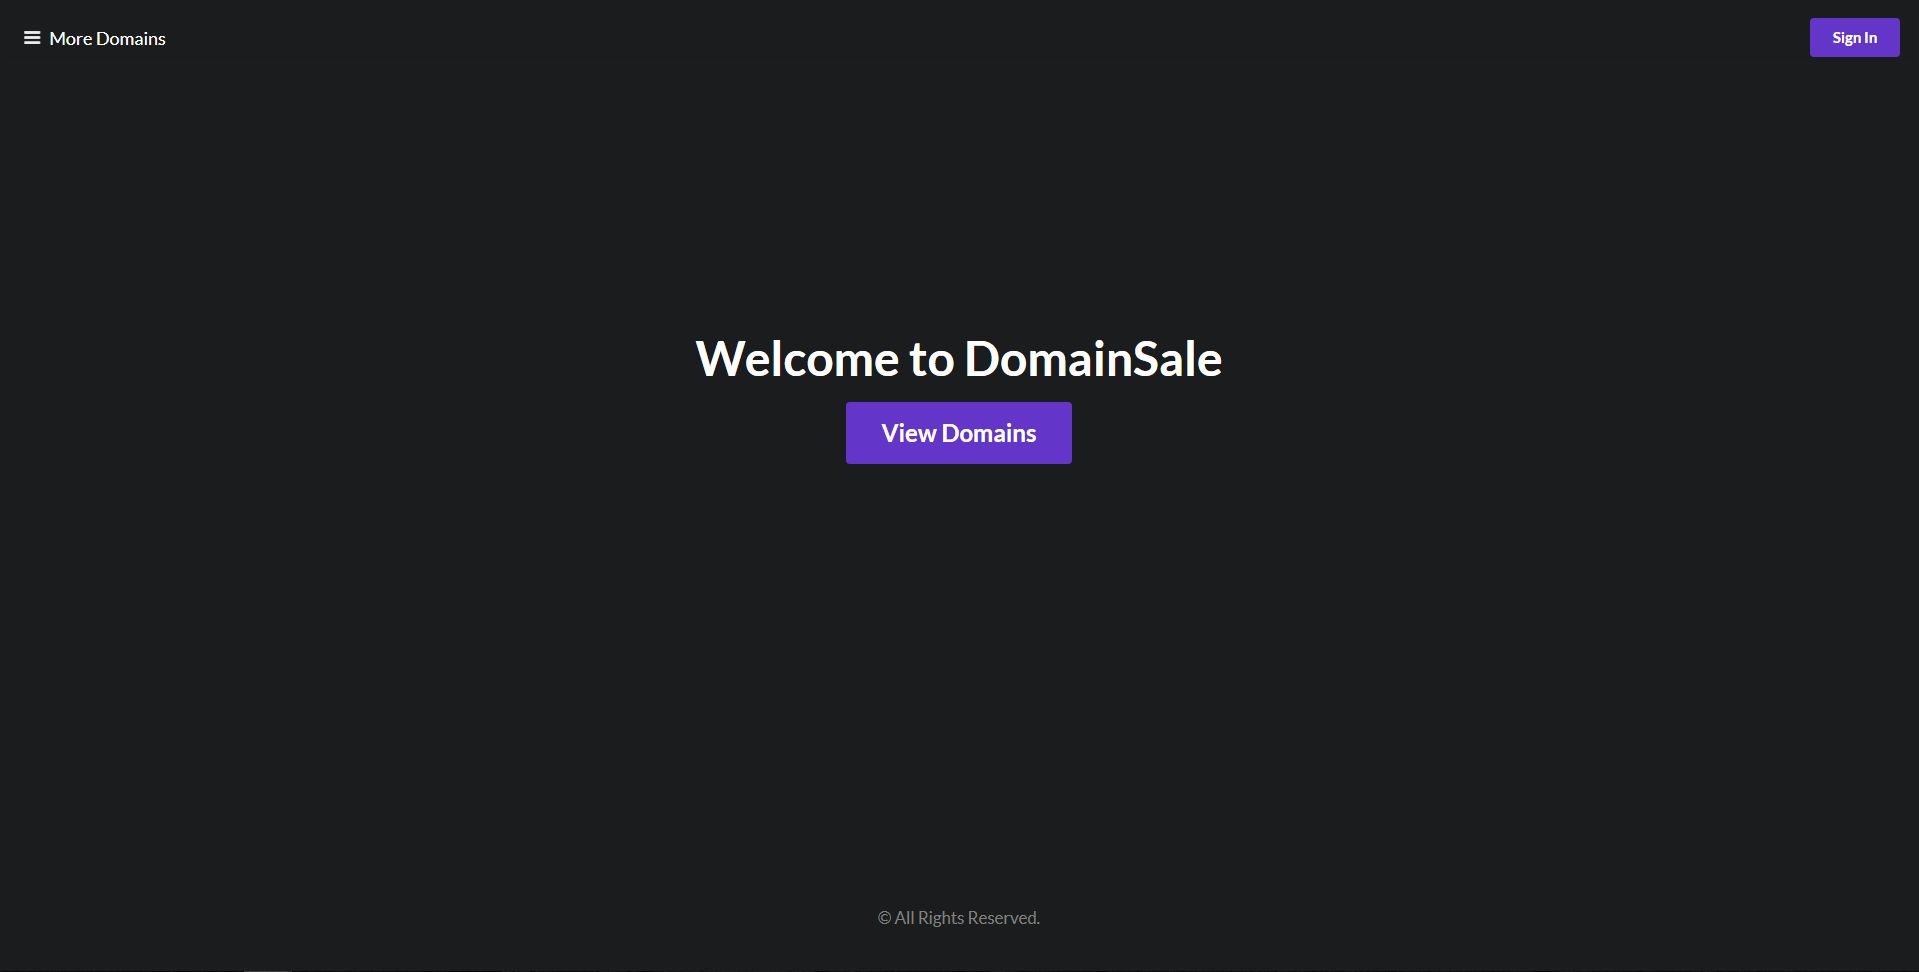 DomainSale PHP Script Screenshot 2